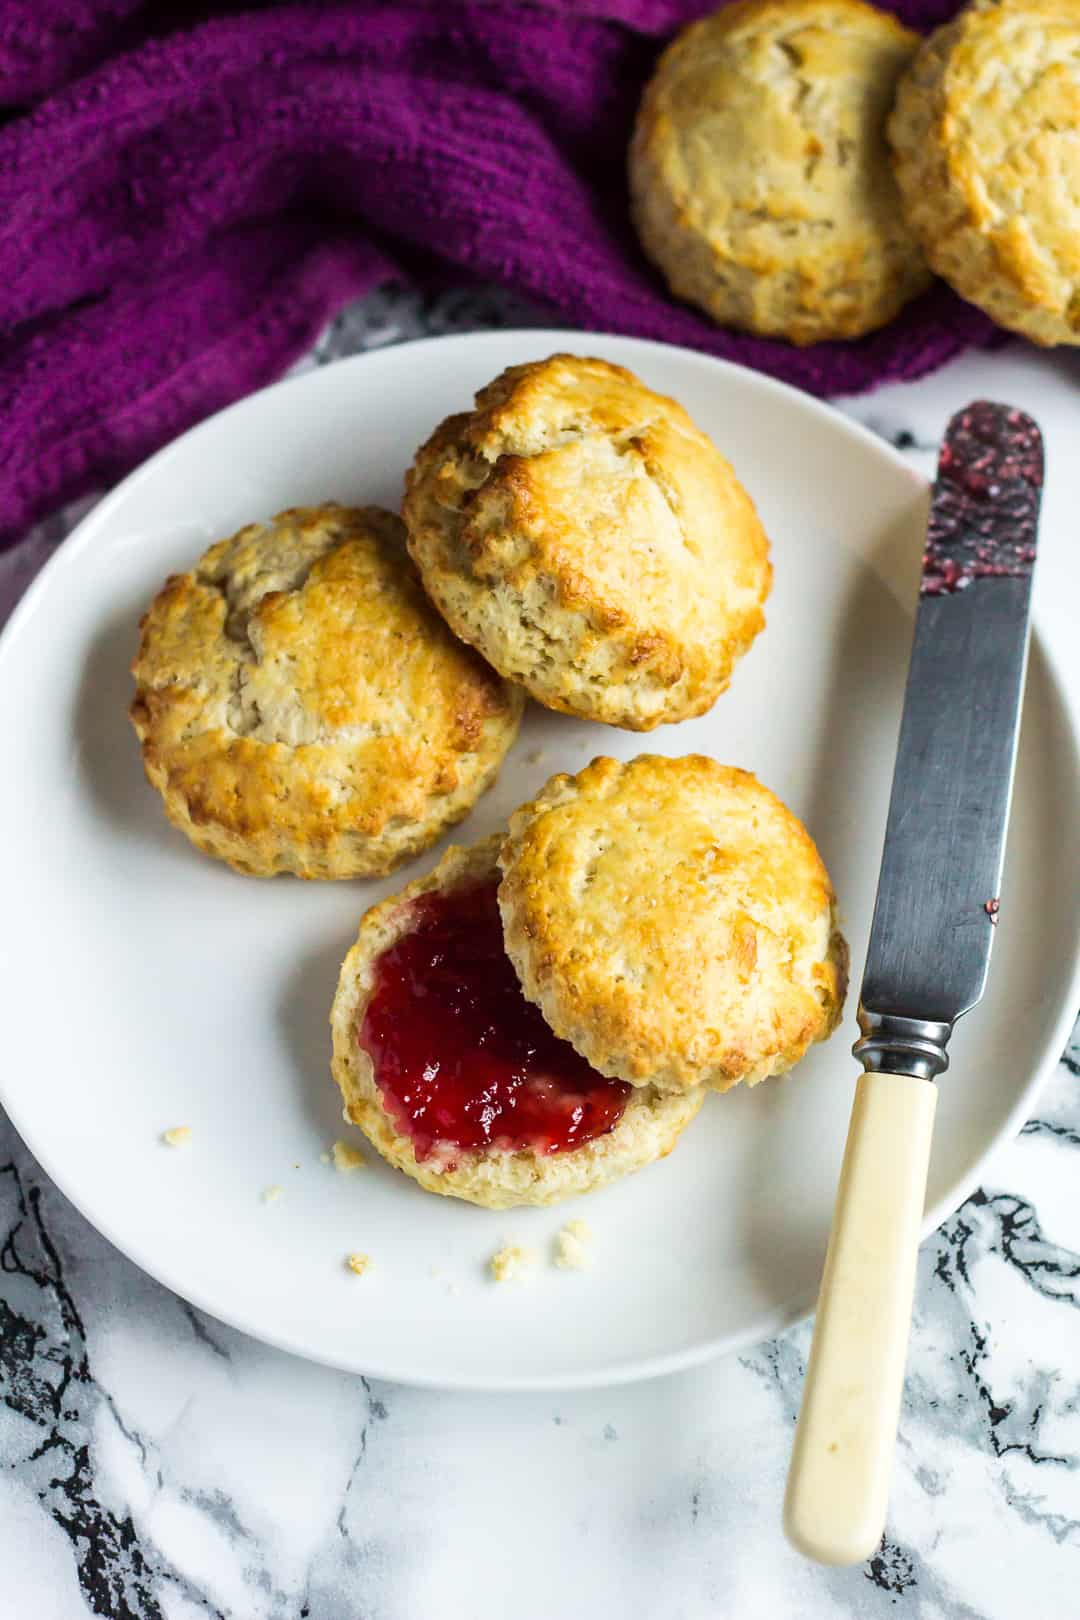 An overhead shot of Classic English Scones served on a small white plate. One scone is cut in half and filled with jam.